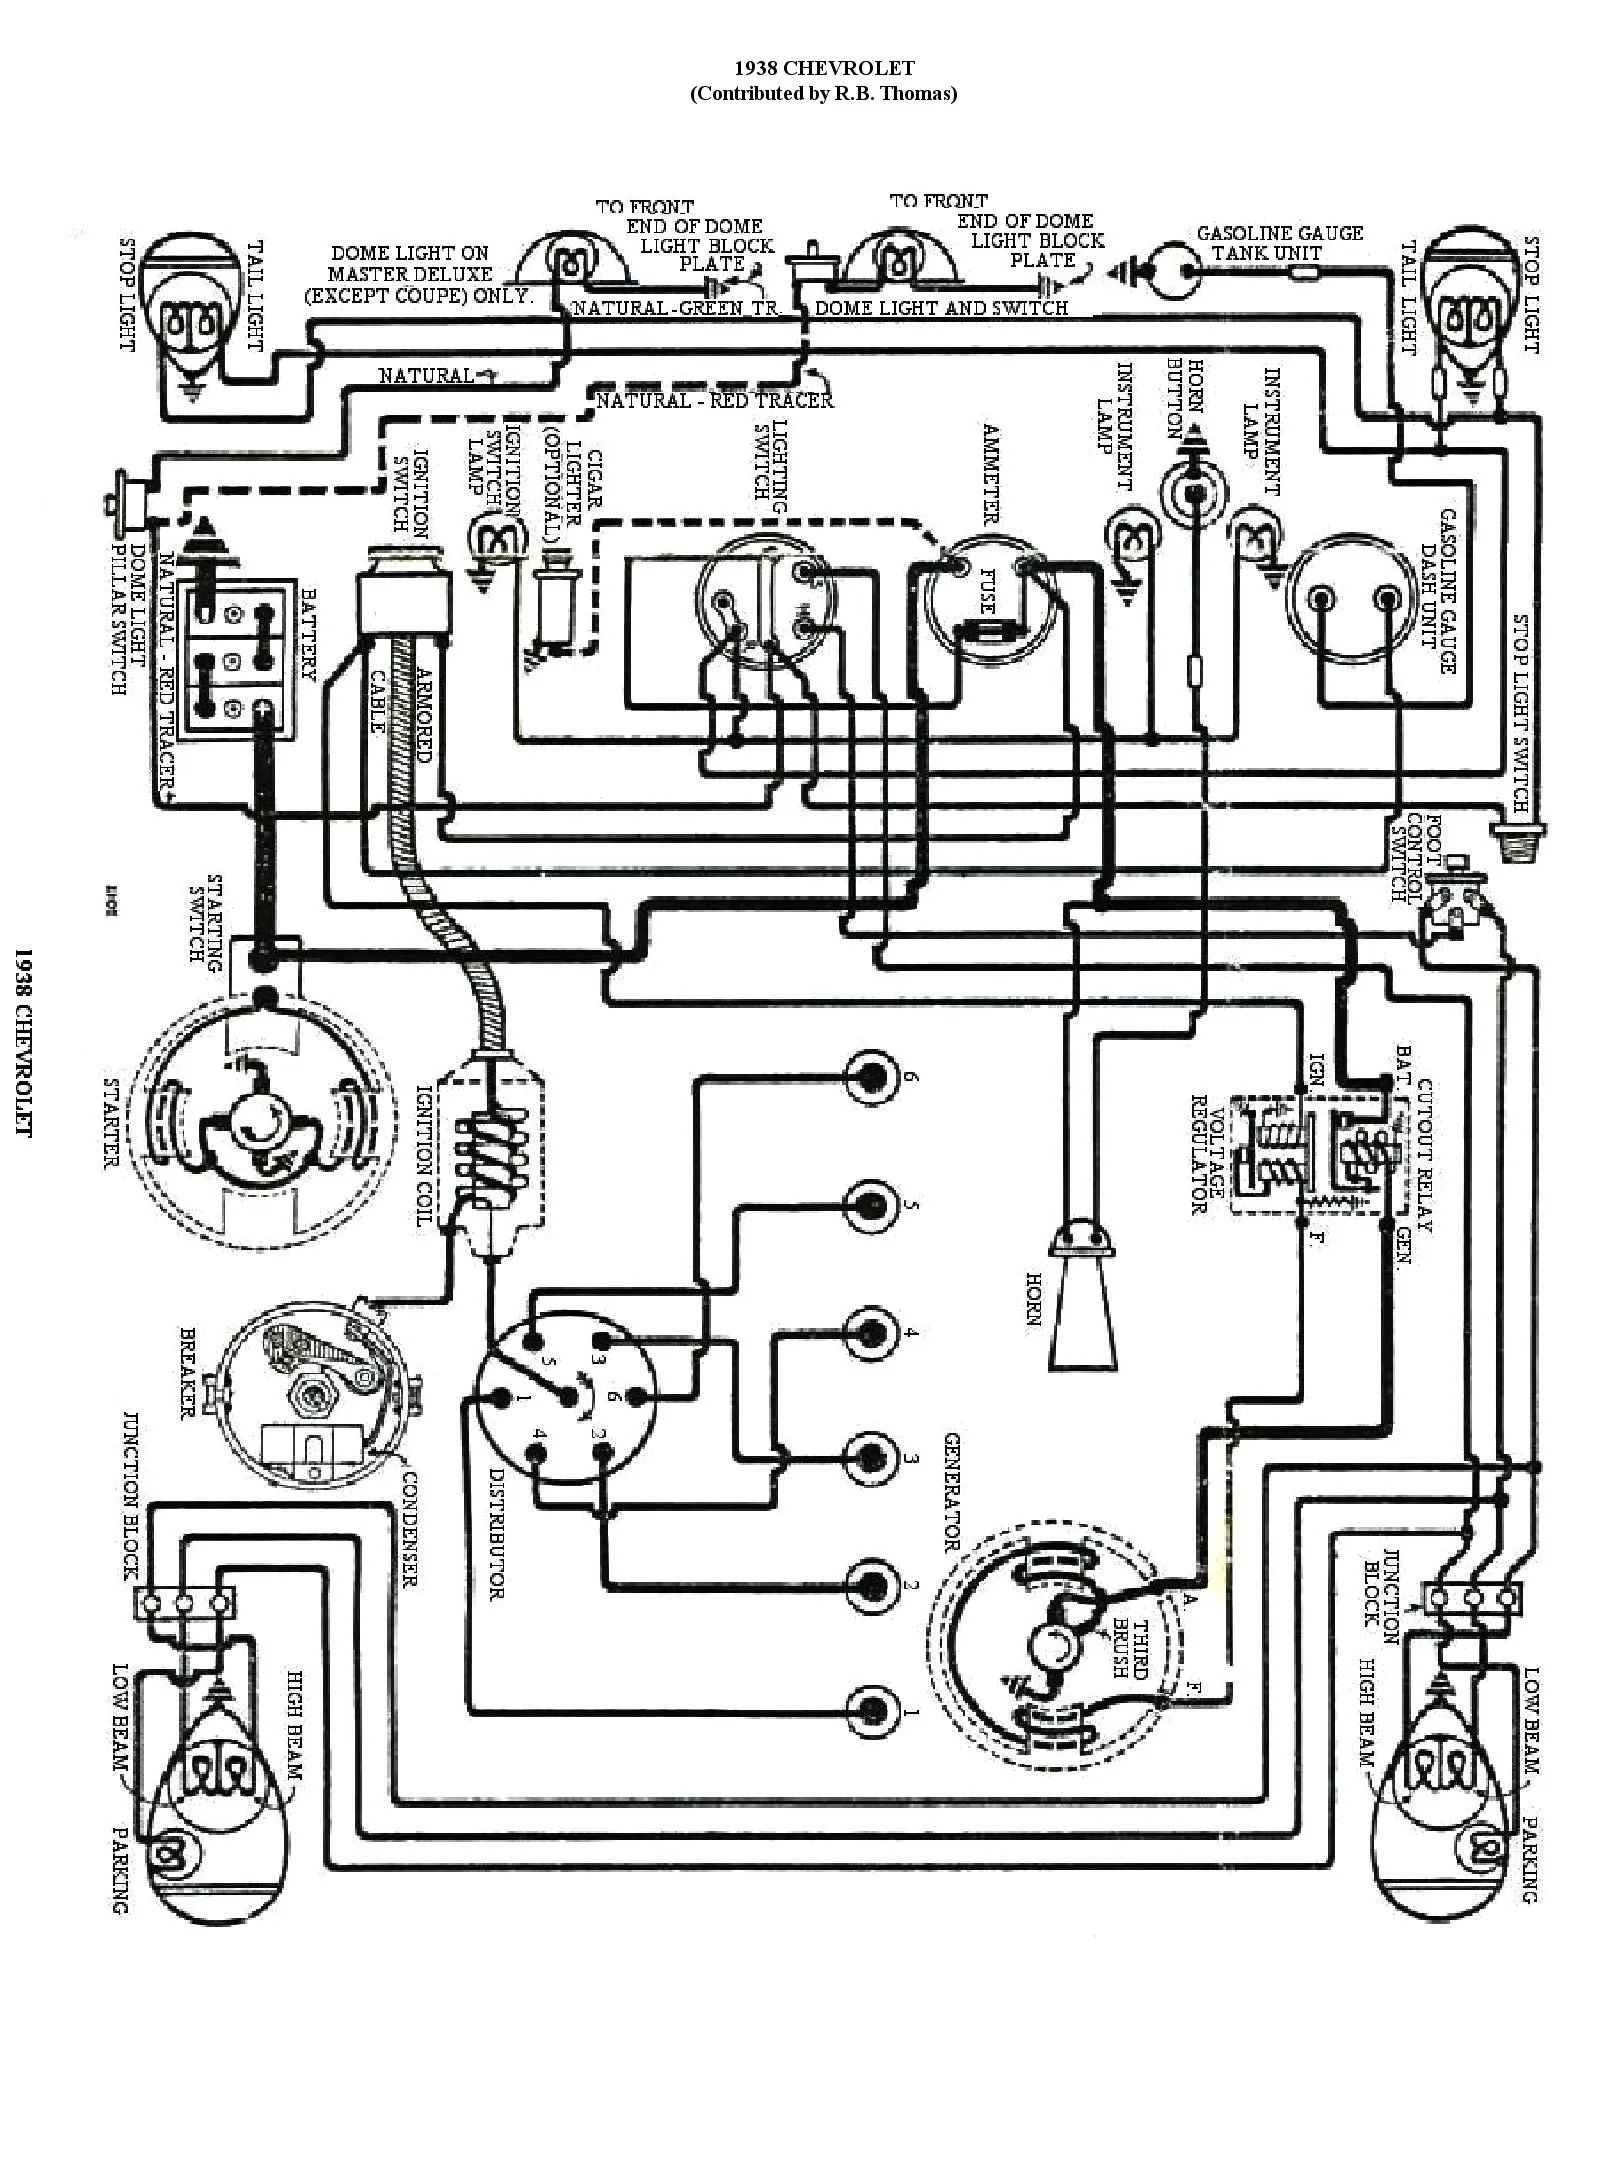 small trailer wiring diagram small engine image for user manual